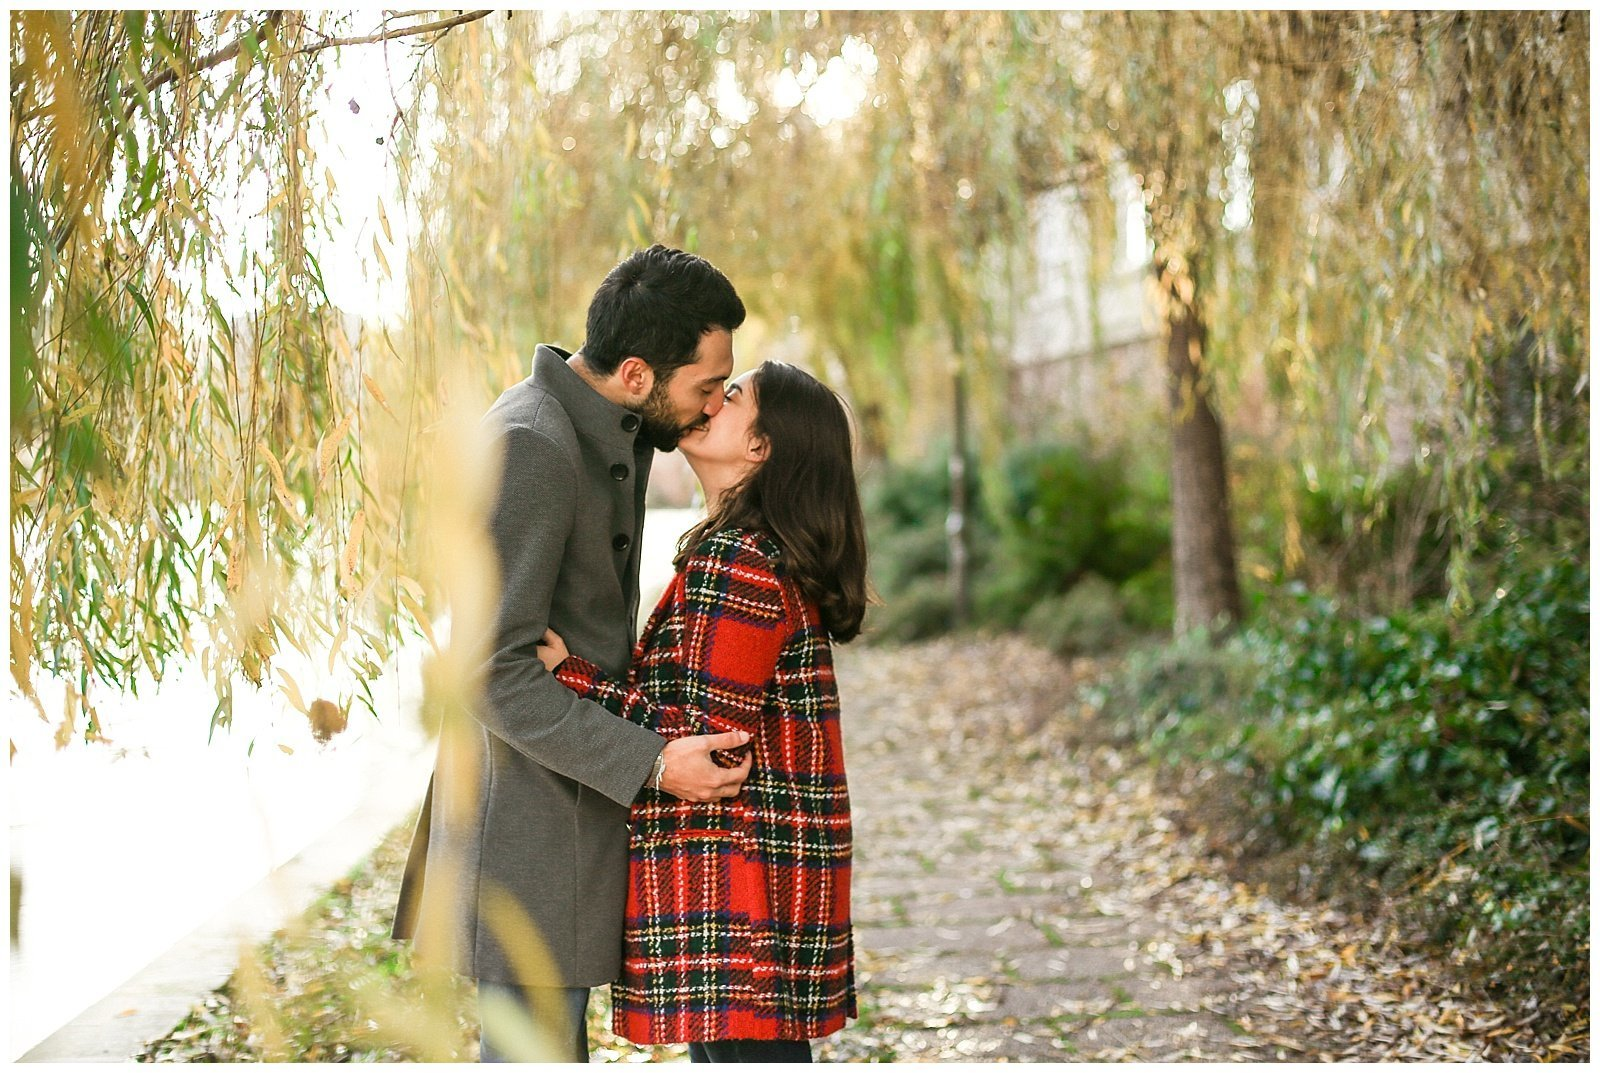 Helena-Woods-Photography-Engagements-Couples-France-New-England_0065